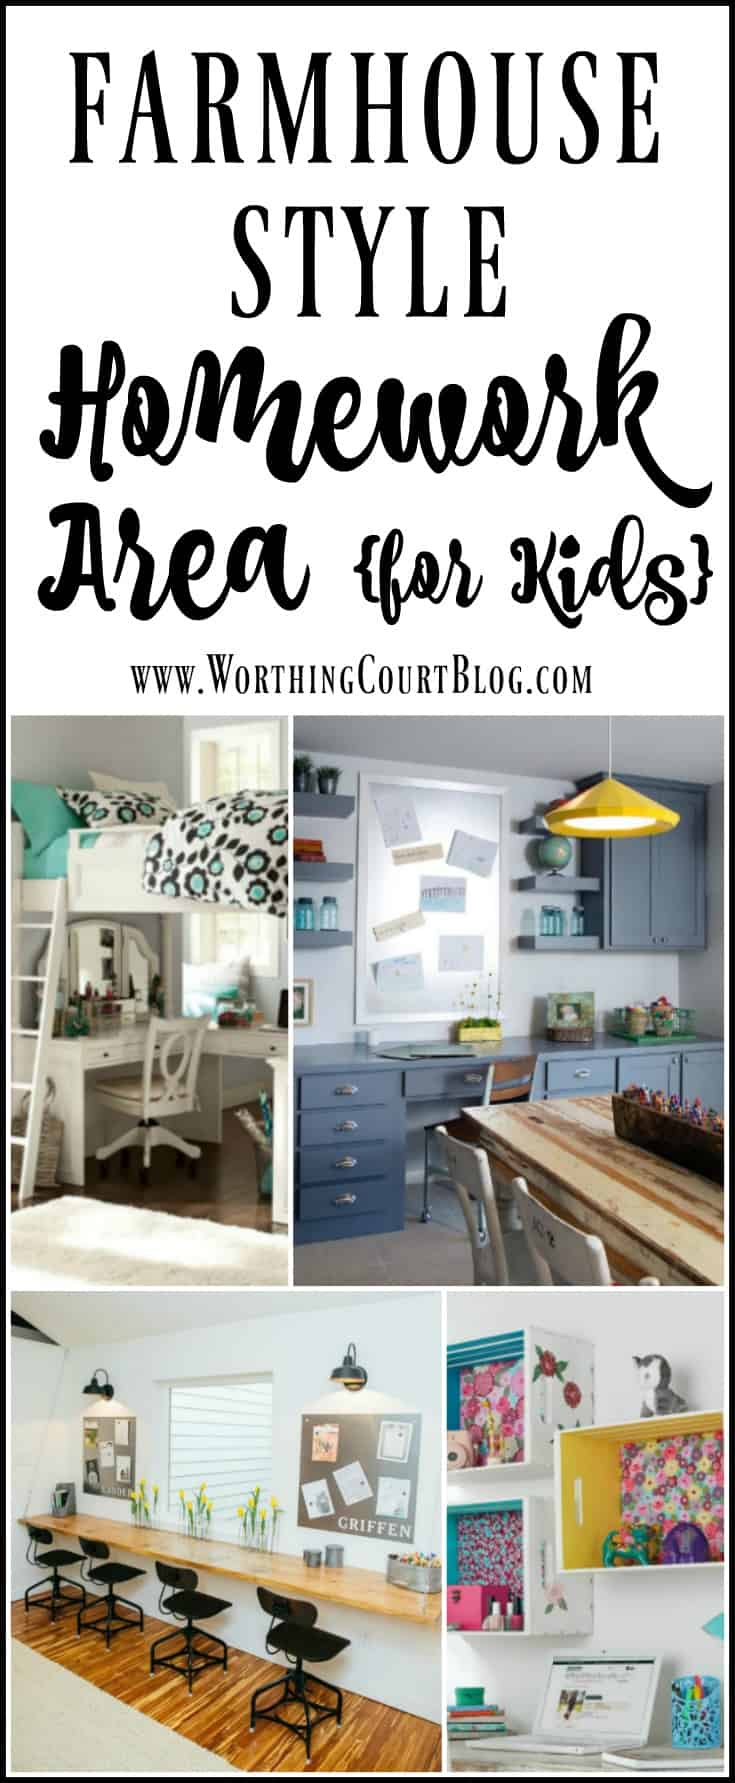 How To Create A Homework Area For Kids - farmhouse style